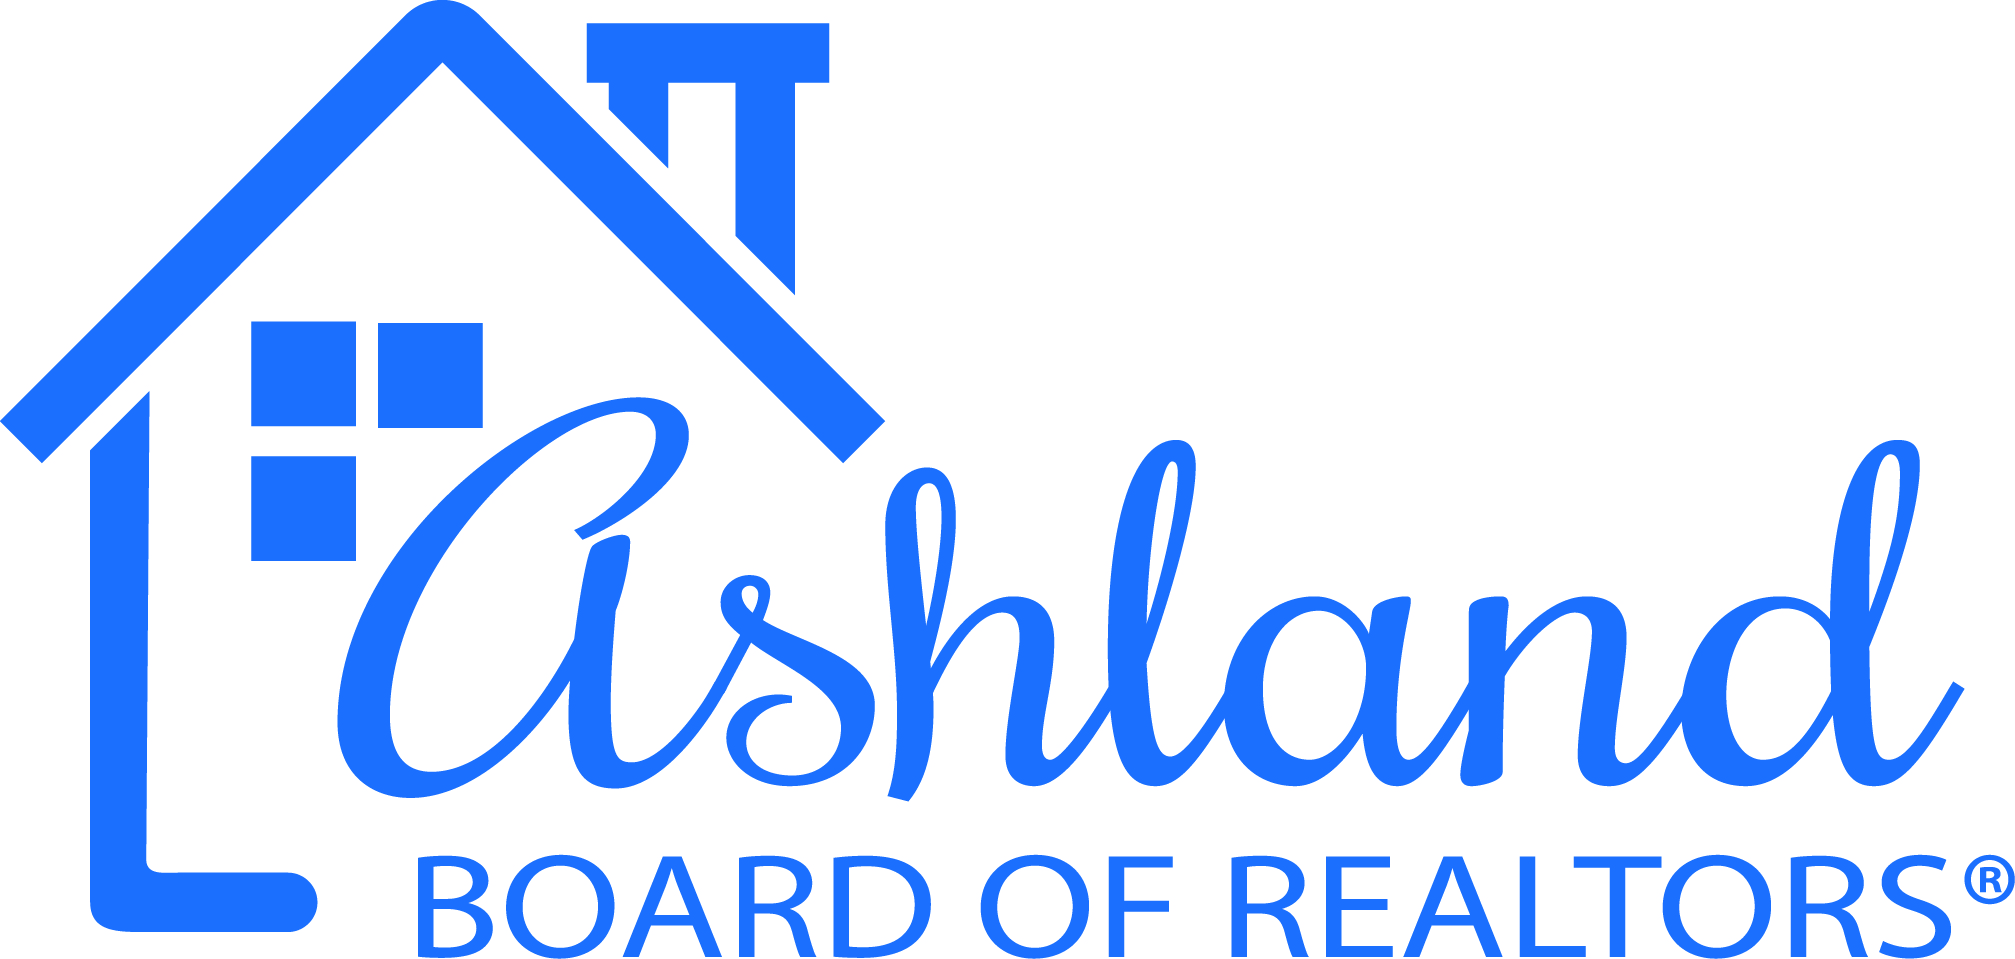 Ashand Board of Realtors Logo